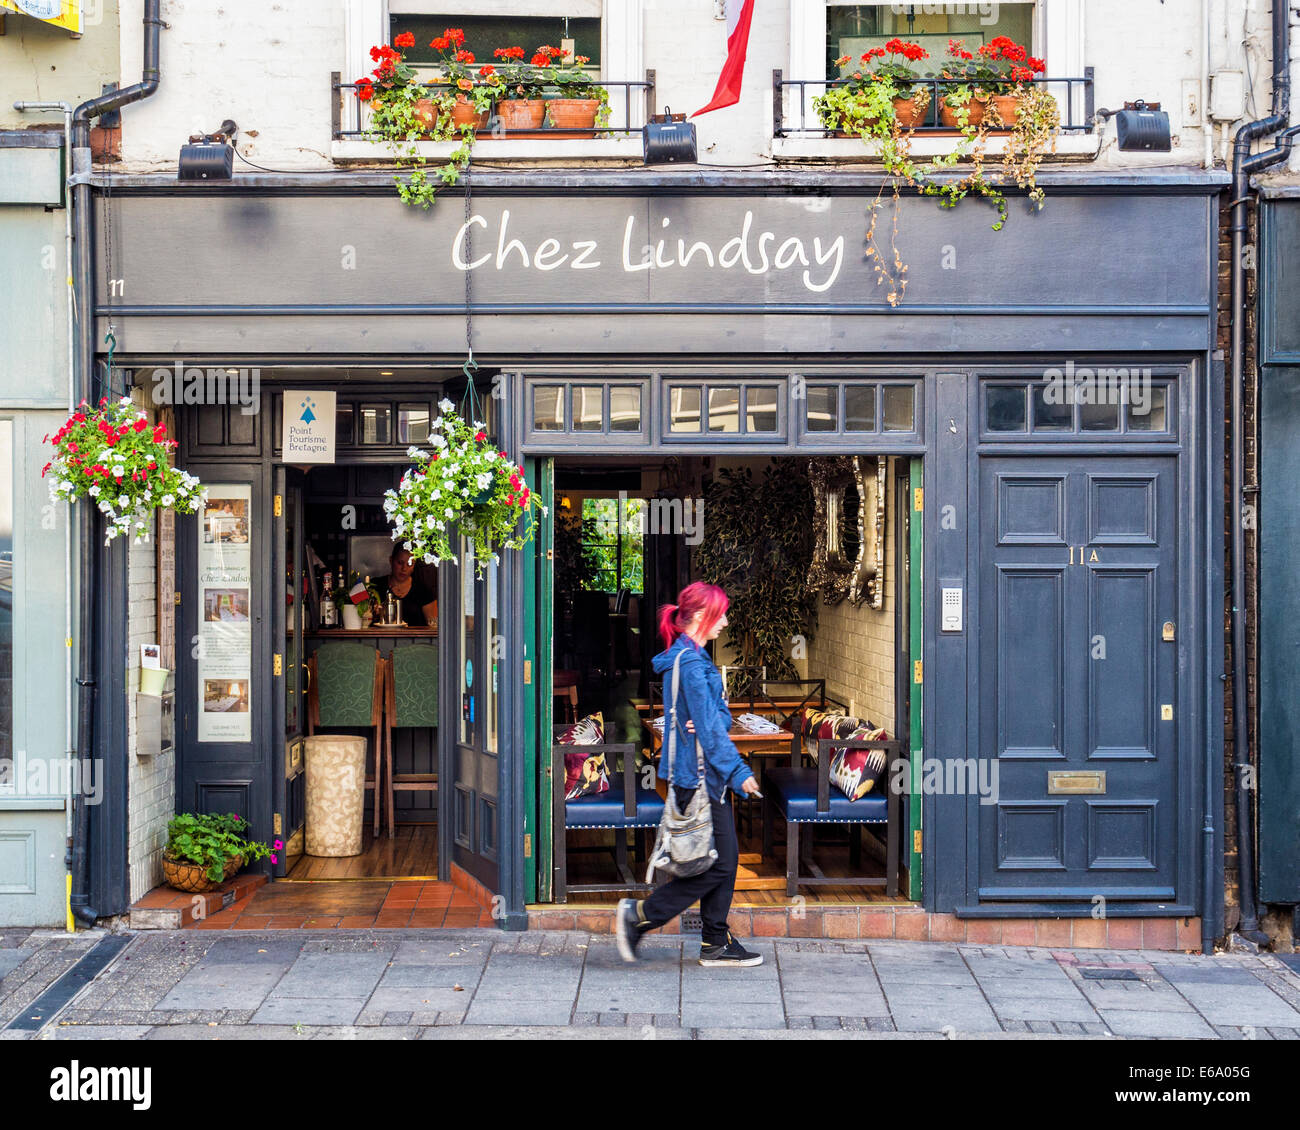 Chez Lindsey restaurant exterior and pedestrian woman with red hair, Richmond upon Thames, Surrey, London, UK - Stock Image